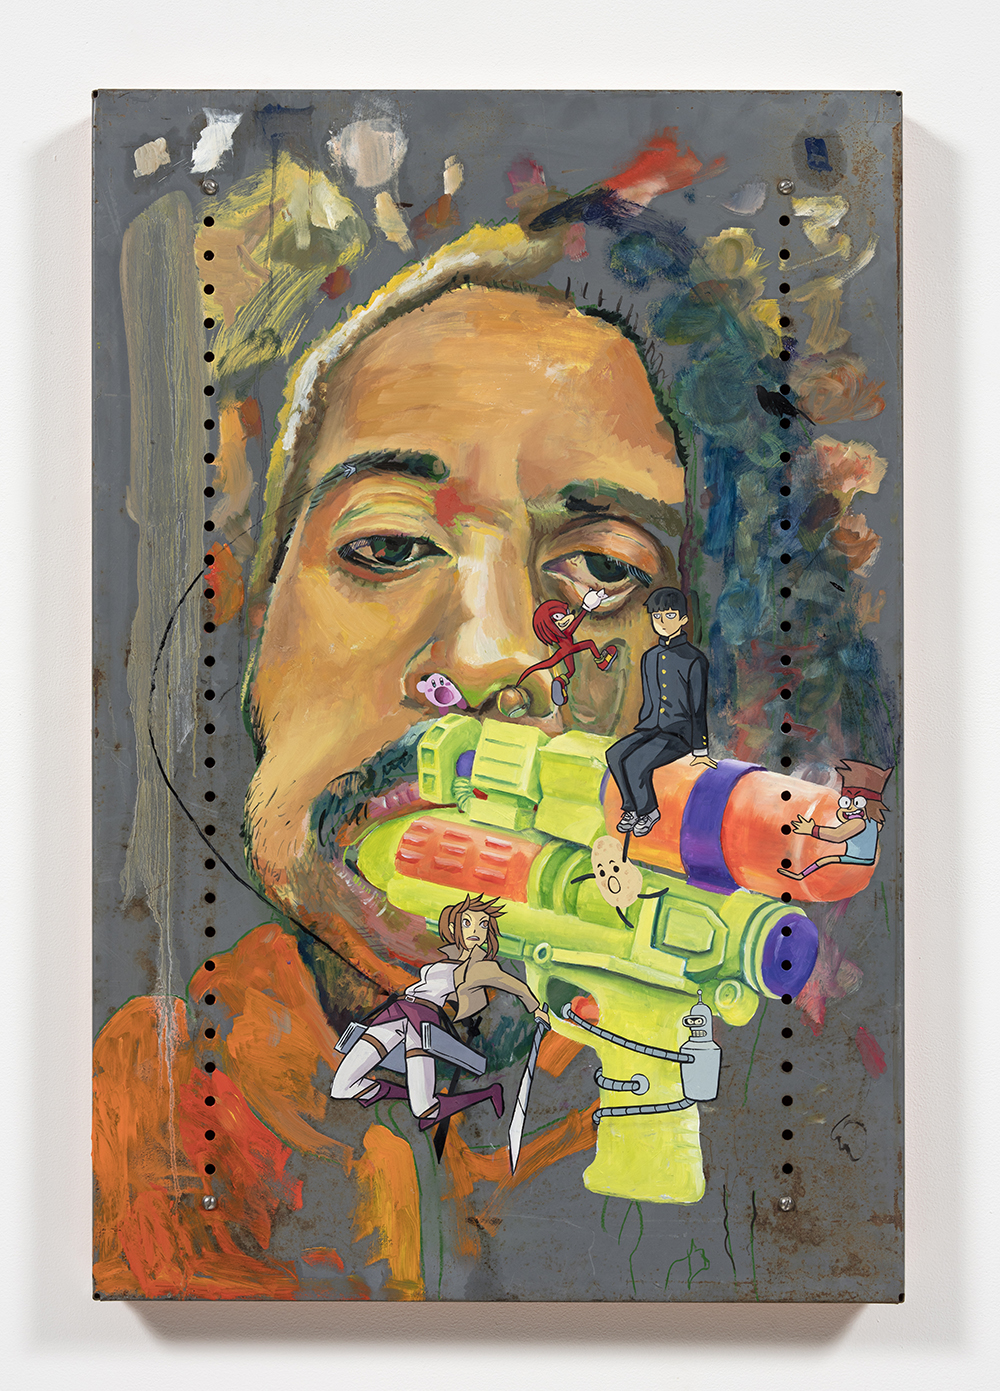 Yung Jake. <em>Untitled Self-Portrait (sasha, knuckles shigeo, kirby, samus, ko, idaho and bender)</em>, 2020. Oil on found metal; powder-coated steel support, 36 x 24 inches  (91.4 x 61 cm)